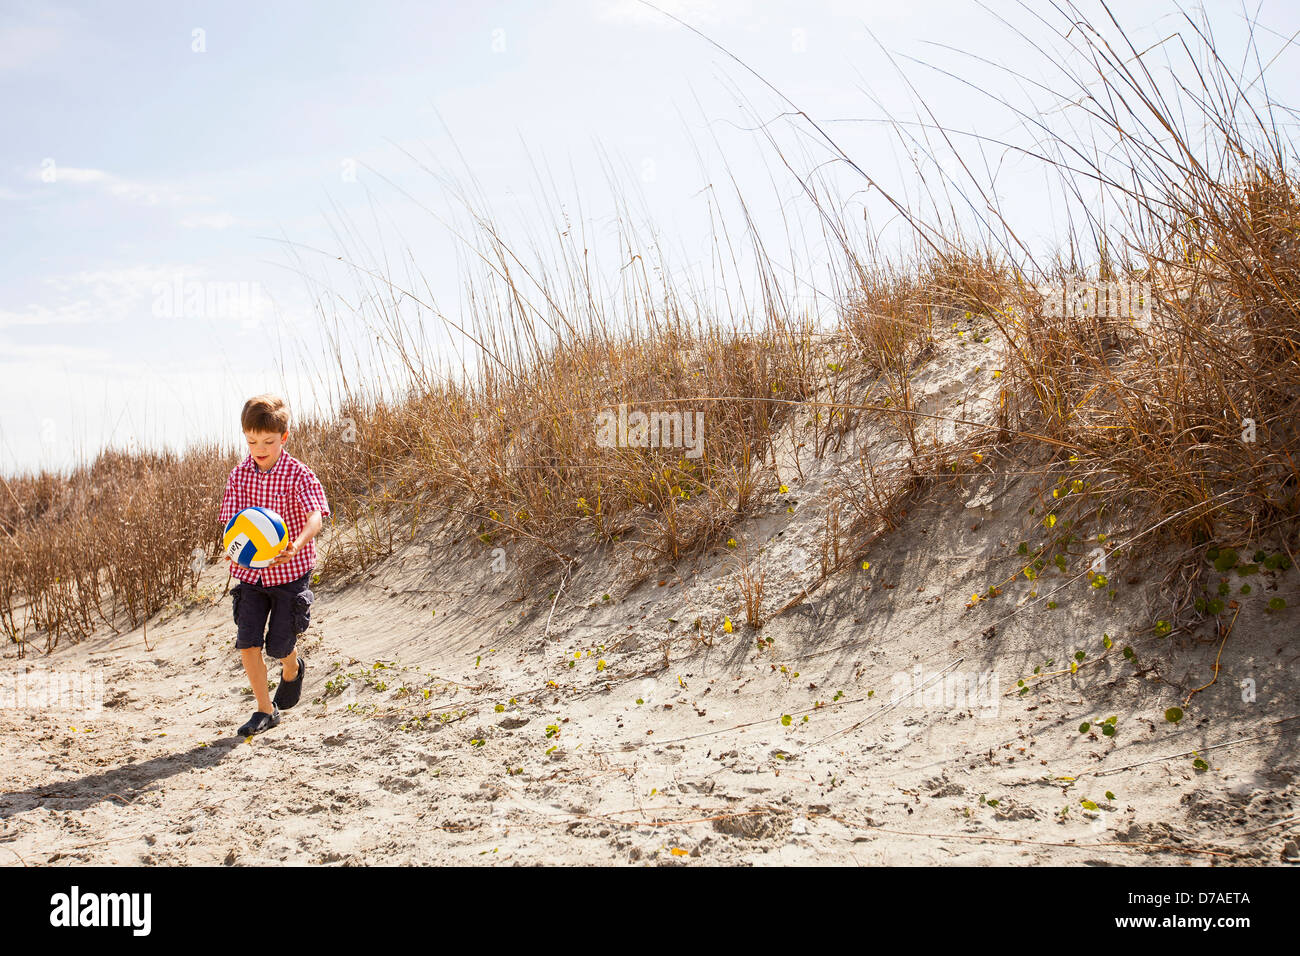 boy kicking a soccer ball - Stock Image